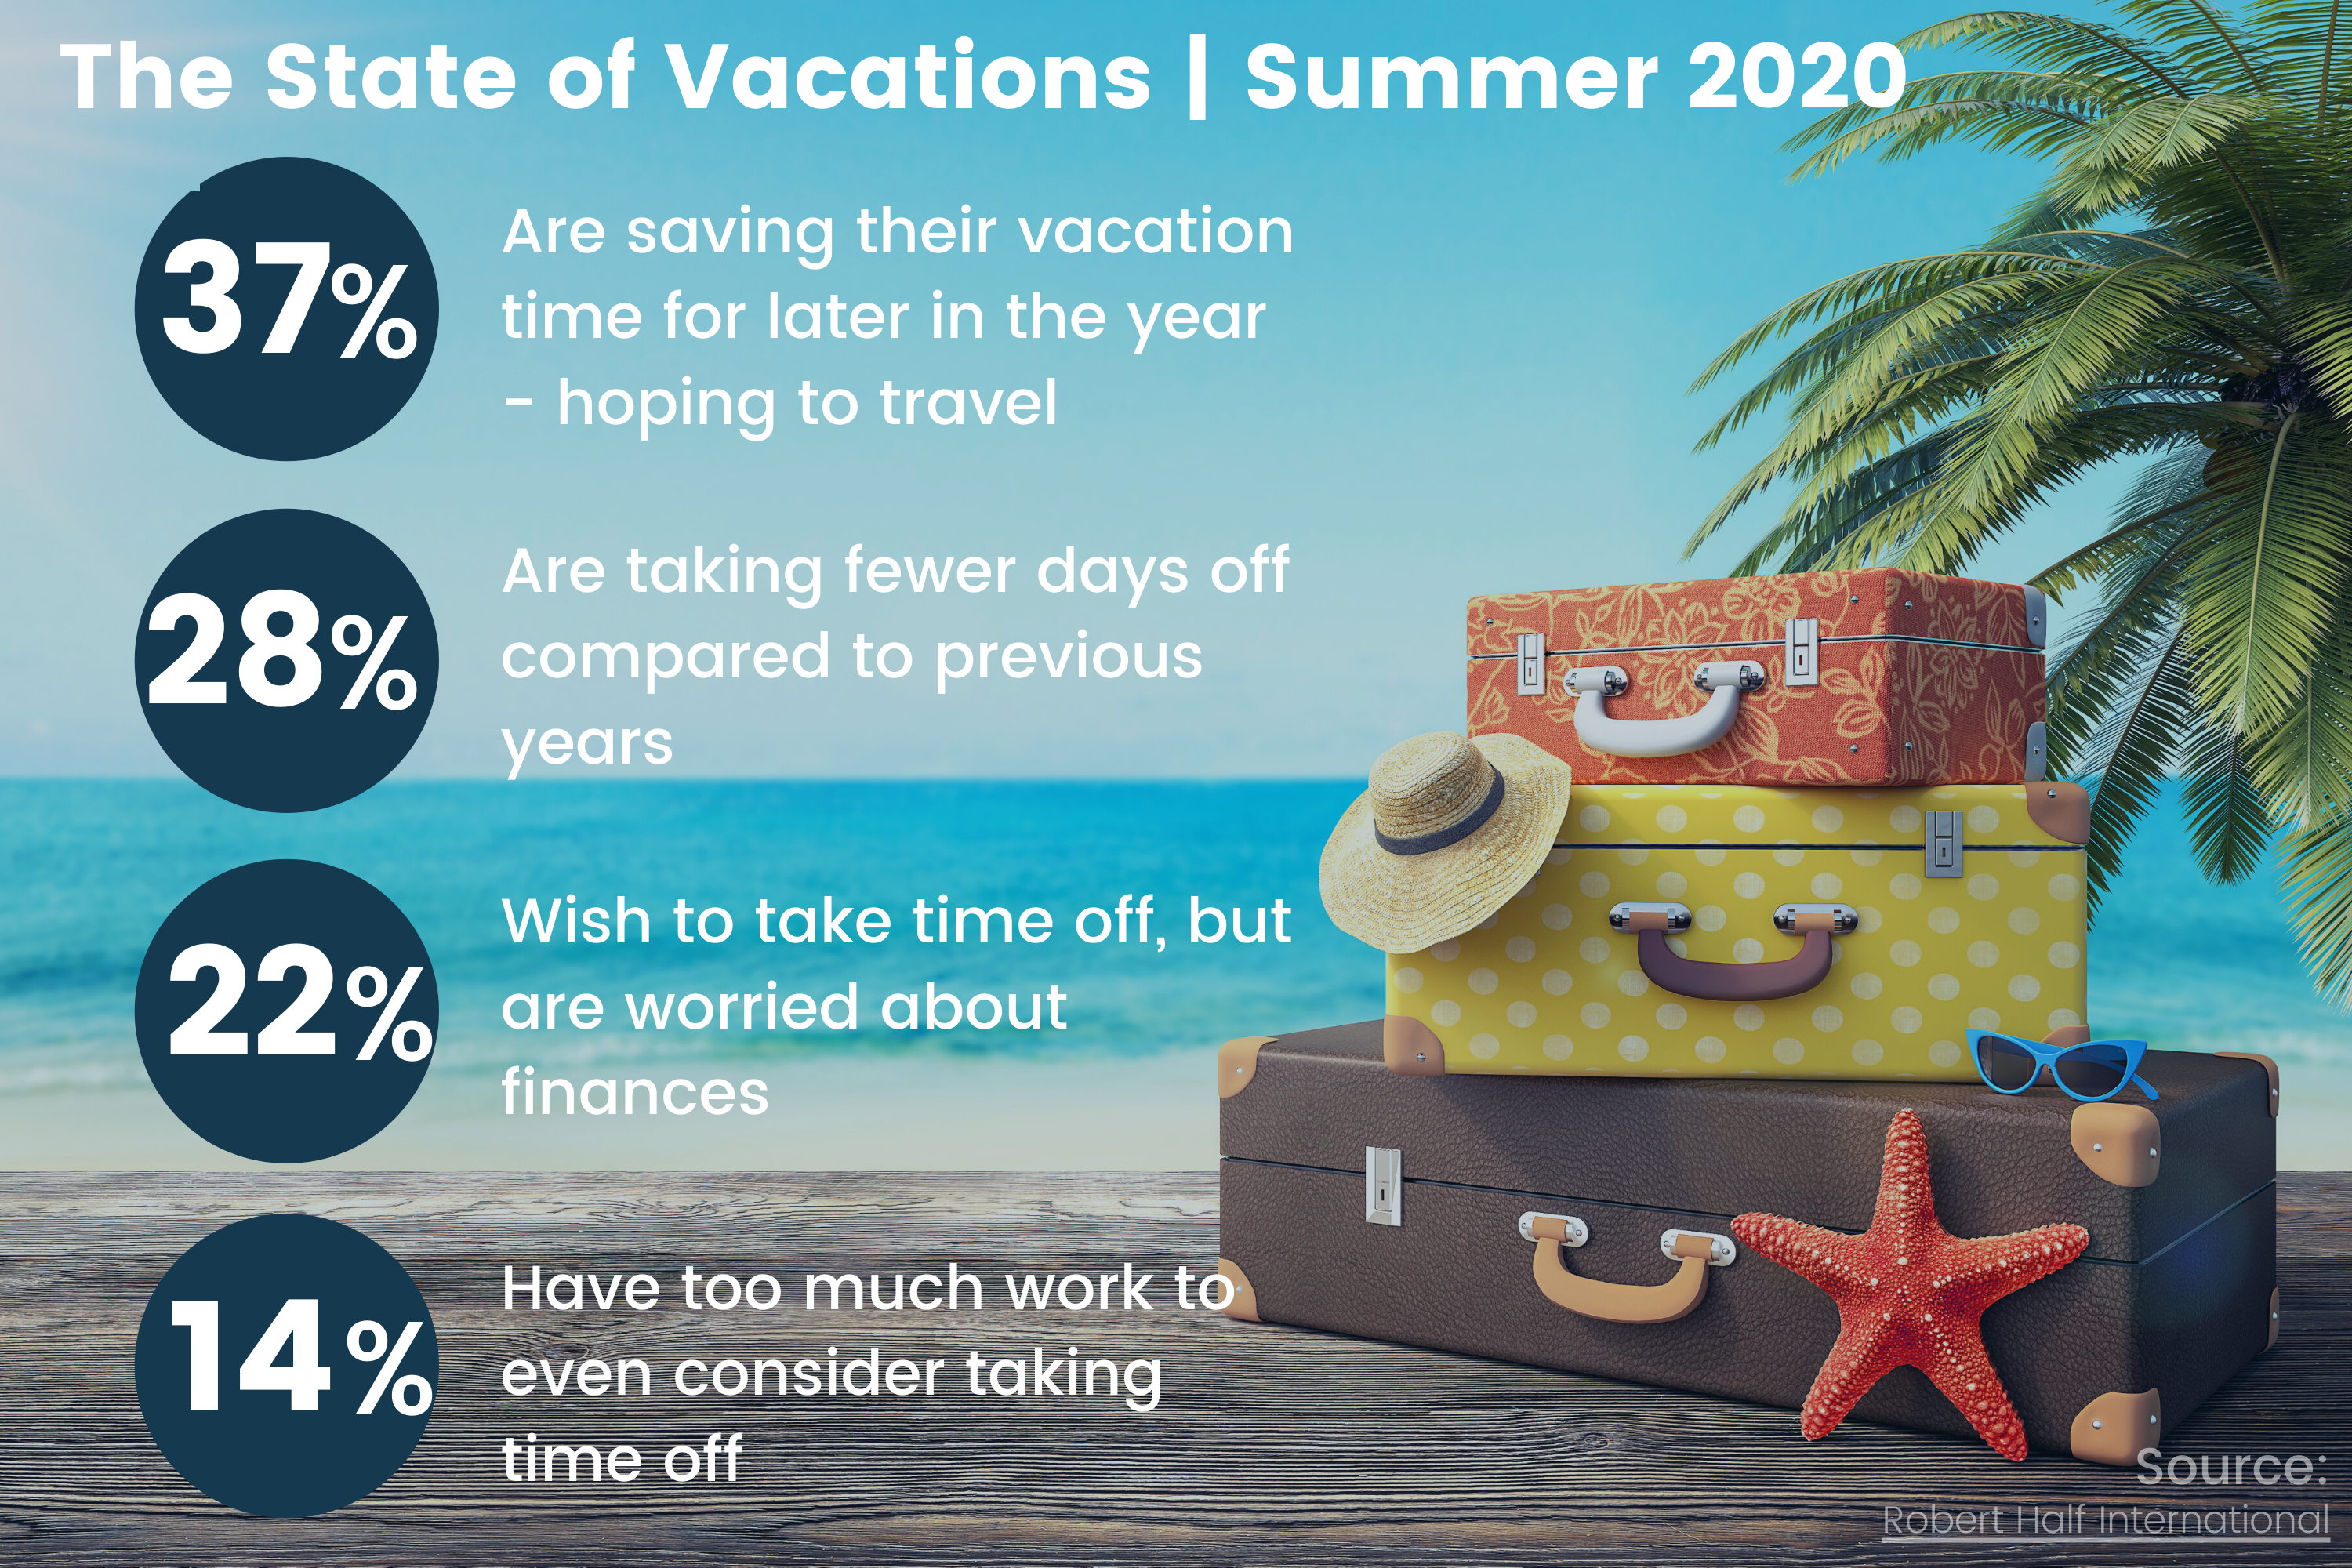 Infographic_dispaying_statistics_on_what_people_are_saying_about_the_state_of_vacations_in_2020_set_to_a_beach_trip_background